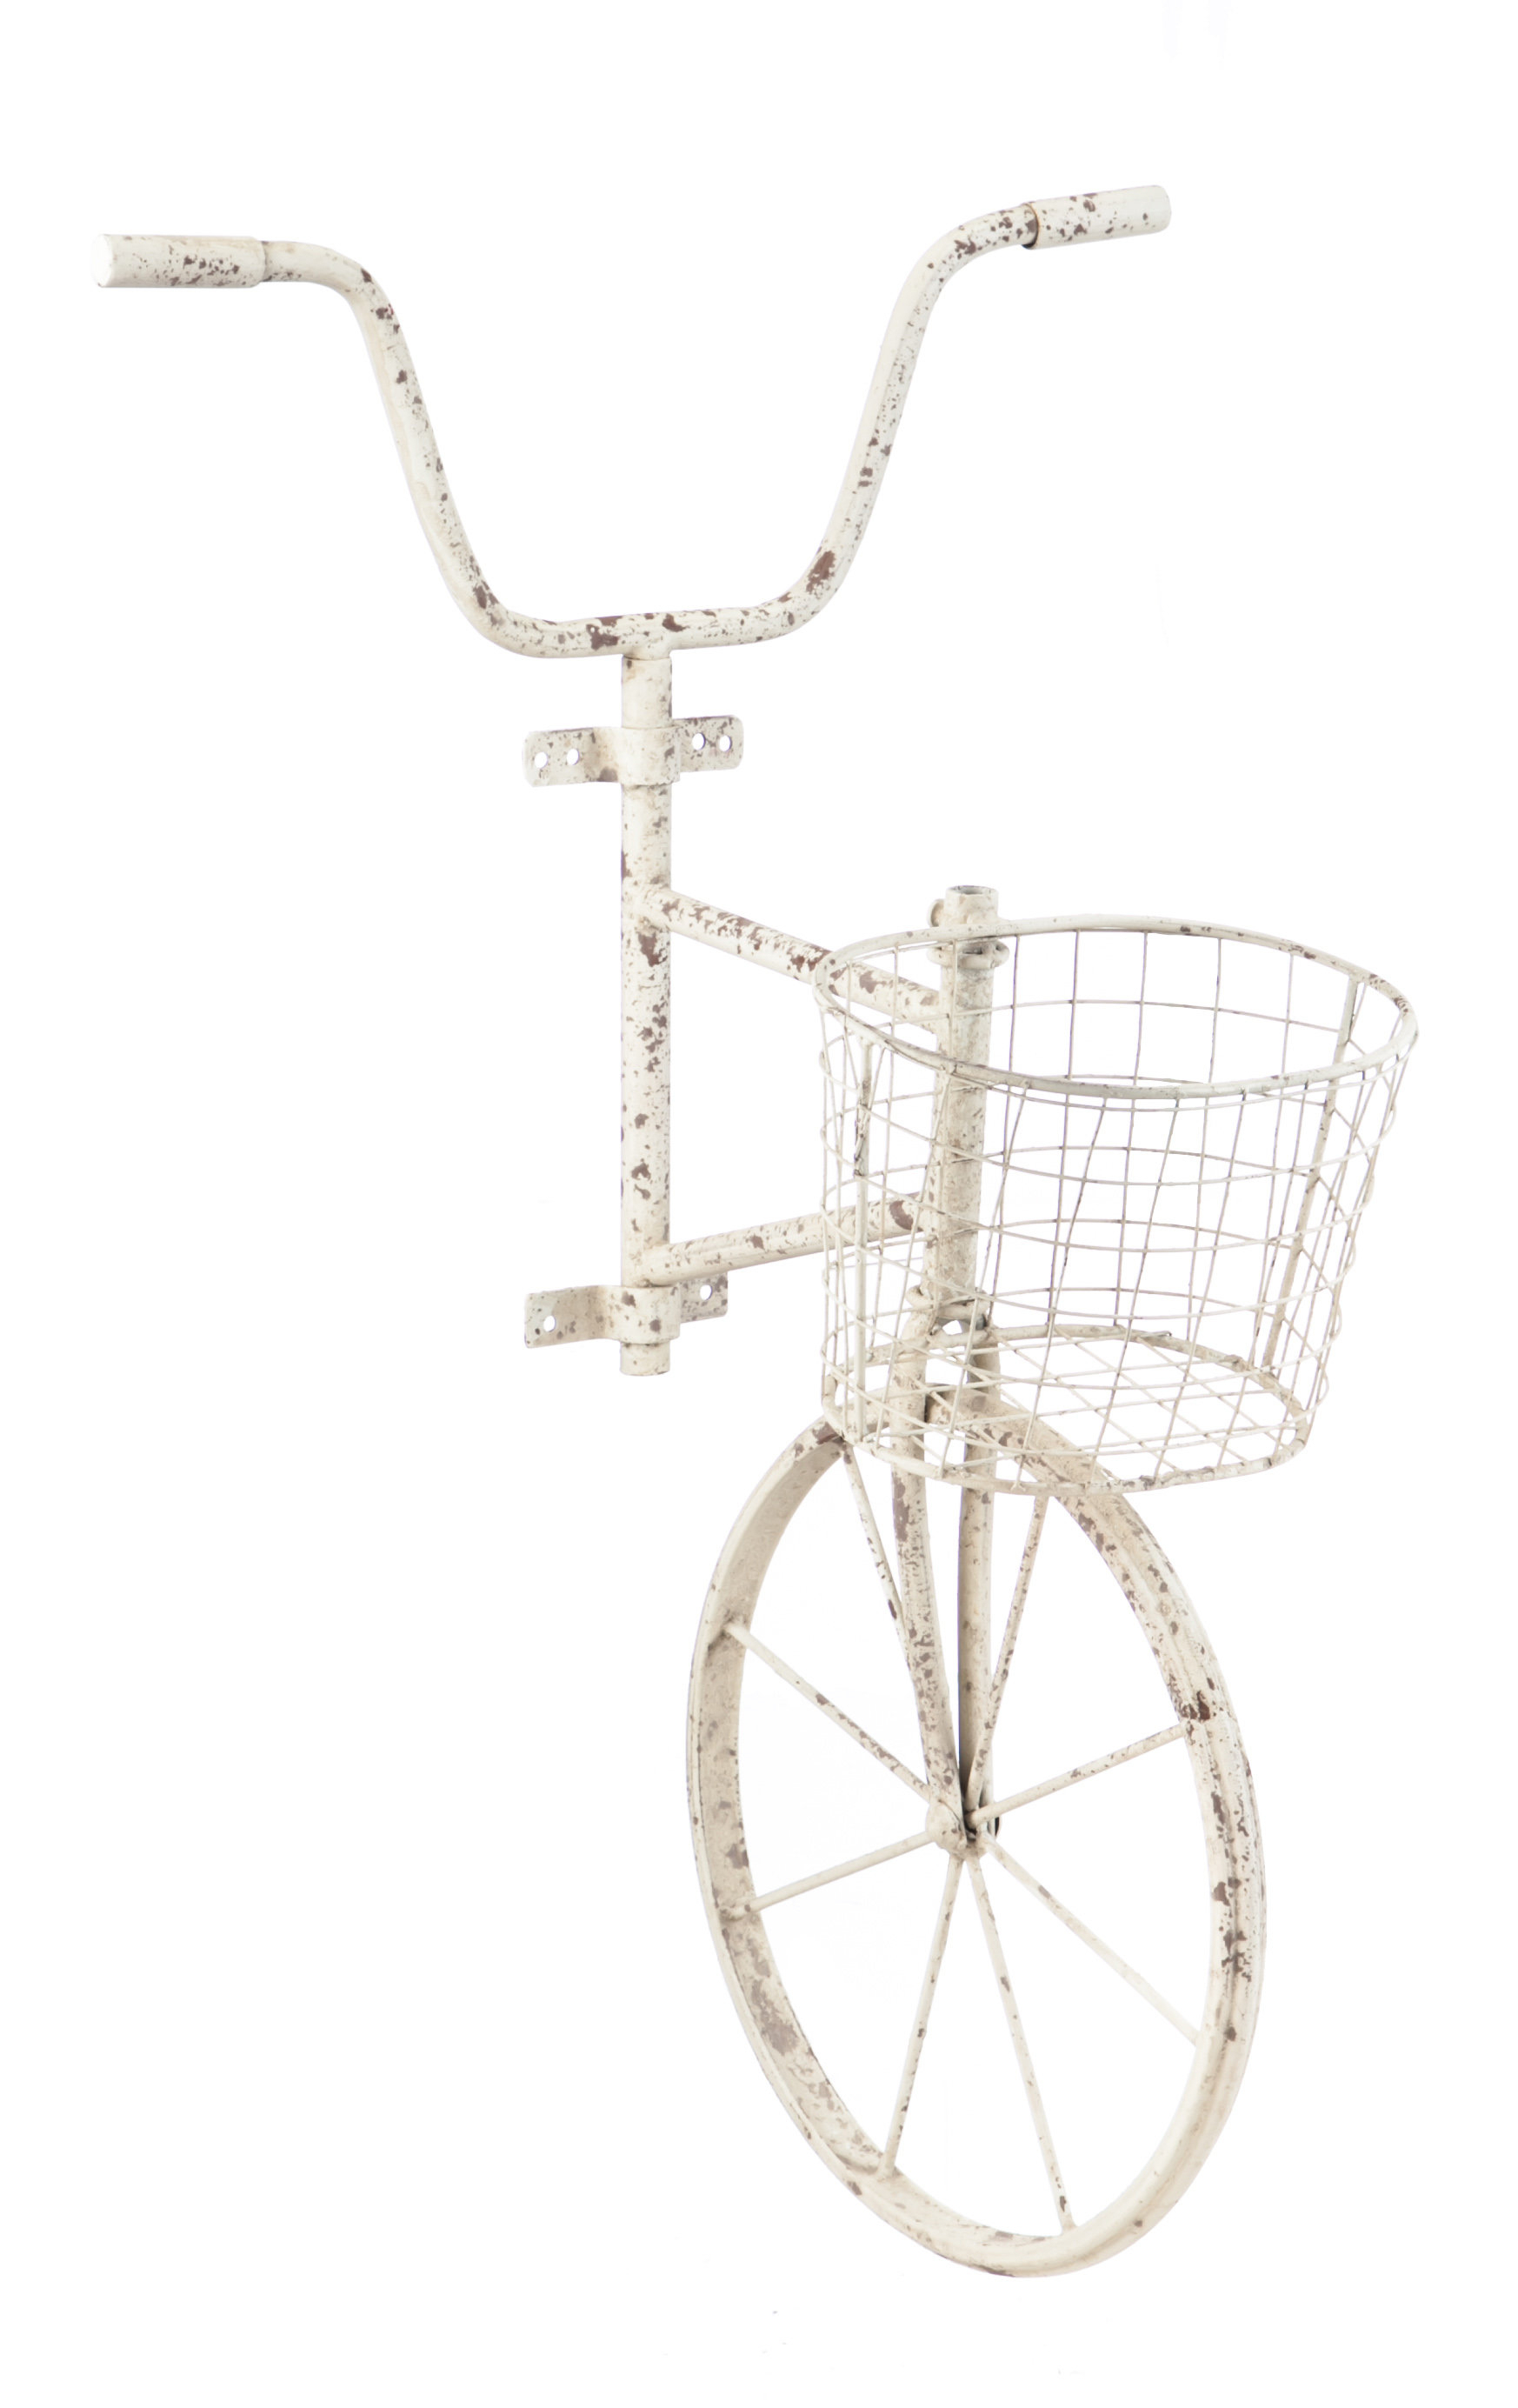 2020 Metal Bicycle Wall Décor & Reviews (View 1 of 20)